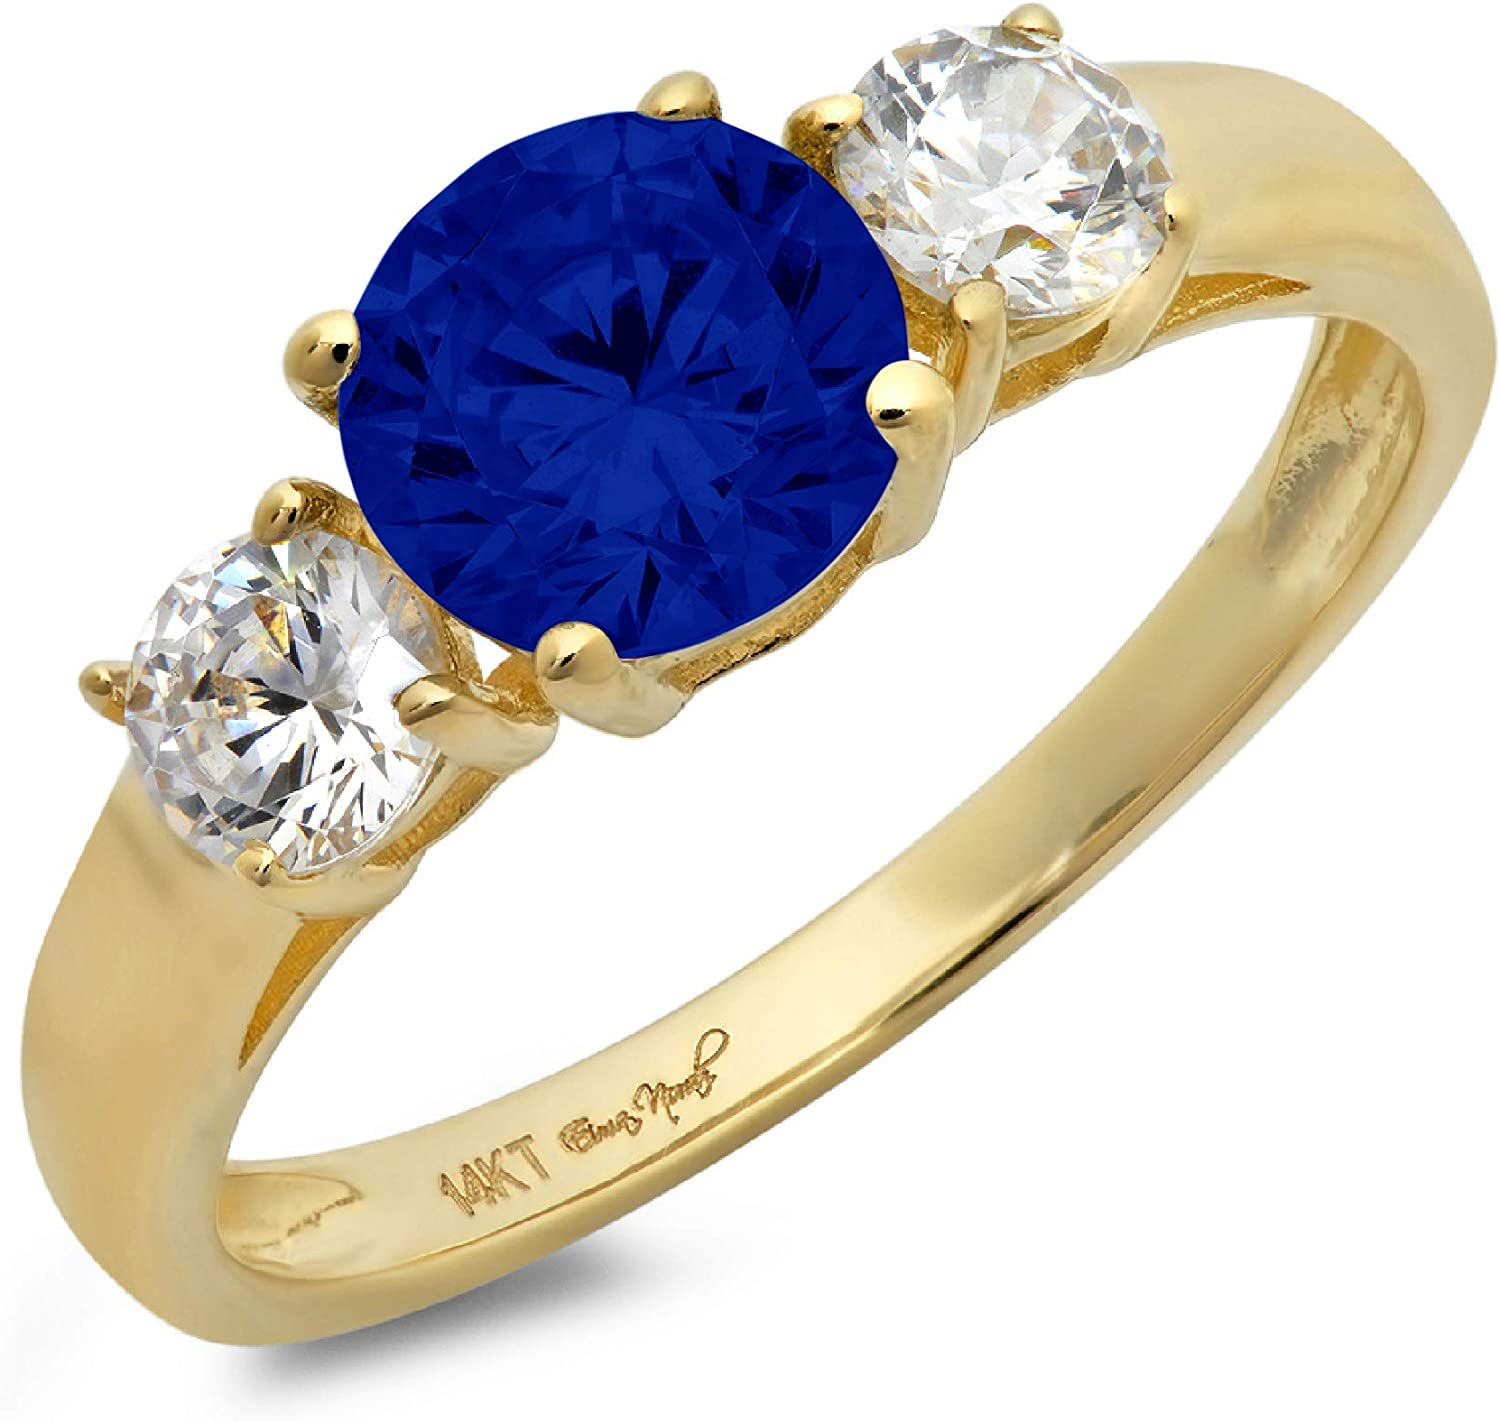 1.44ct Brilliant Round Cut Solitaire 3 stone Flawless Ideal Genuine Cubic Zirconia Blue Sapphire Engagement Promise Statement Anniversary Bridal Wedding Designer Ring Solid 14k Yellow Gold